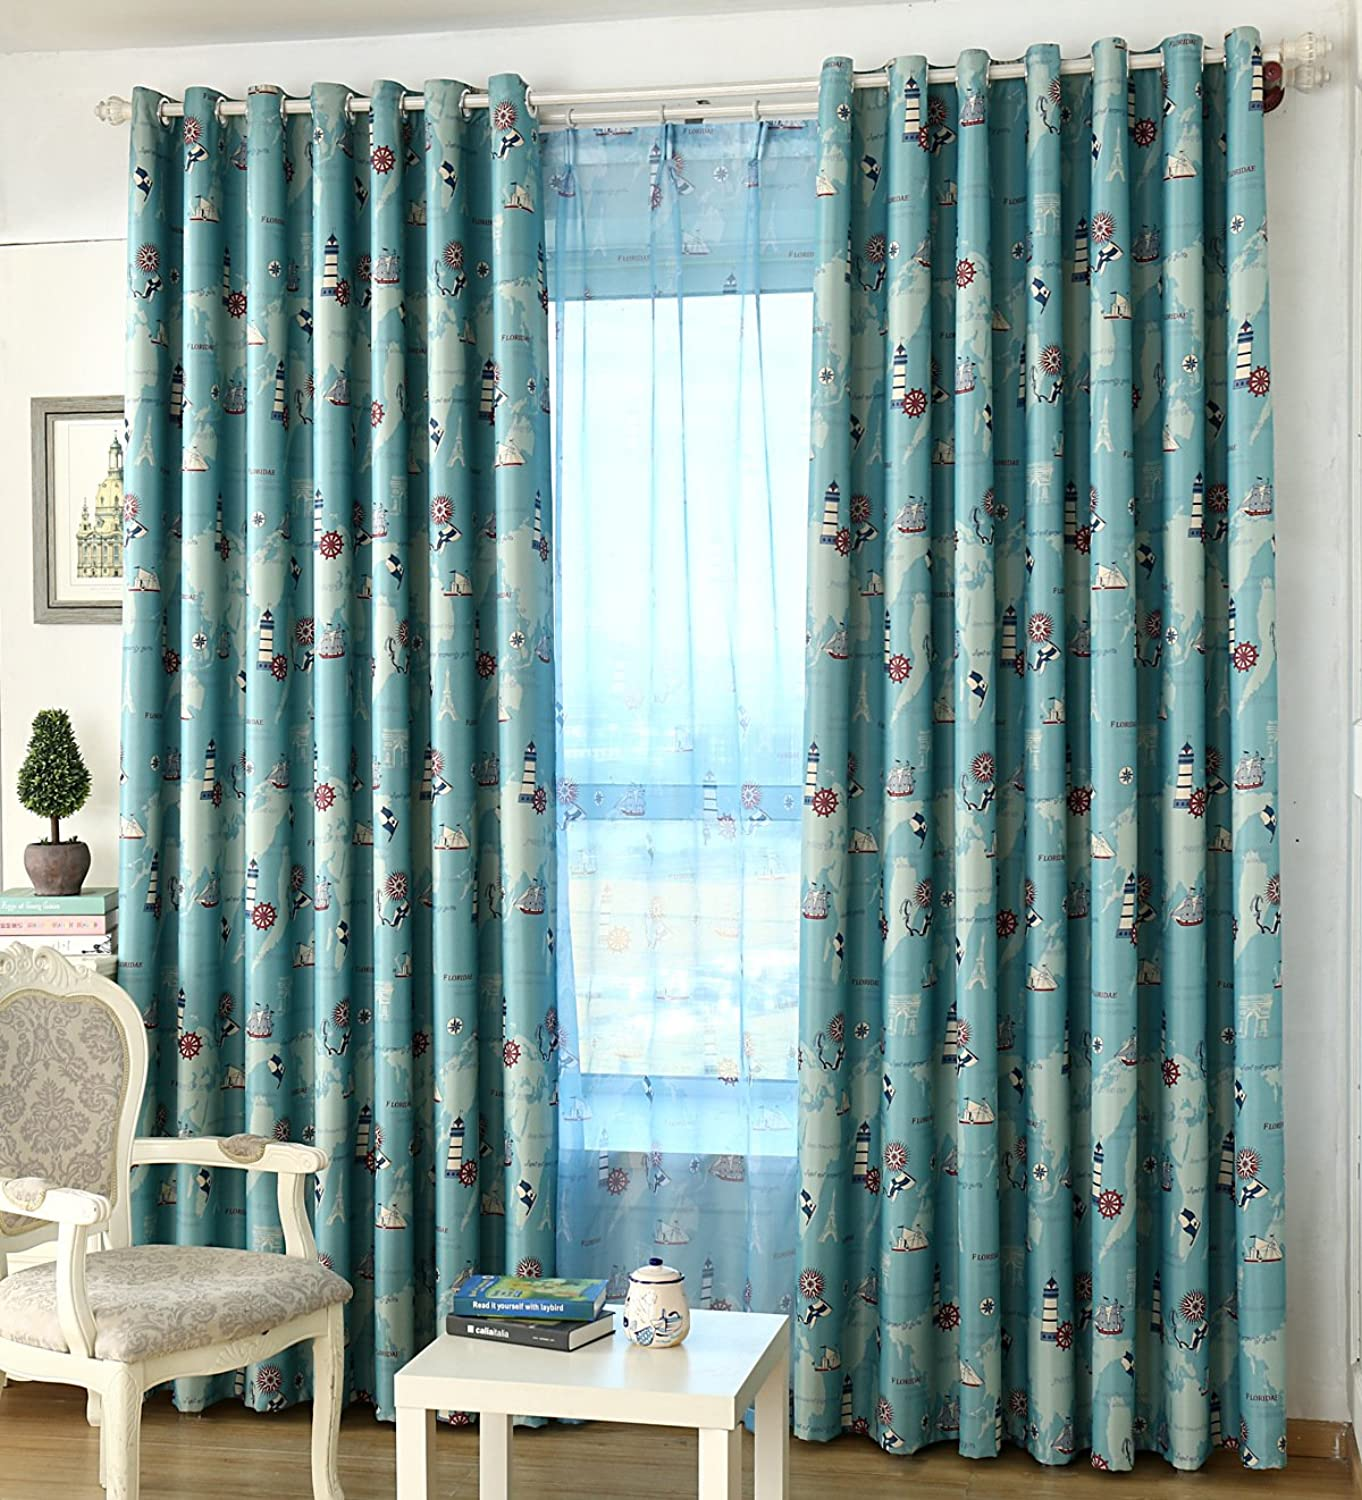 AliFish 1 Panel Nautical Curtains and Drapes Grommet Vessel Rudder Panel Kids Room Window Drapes Blackout Room Darkening Thermal Insulated for Boys Girls Berdoom for Living Room W75 x L84 inch